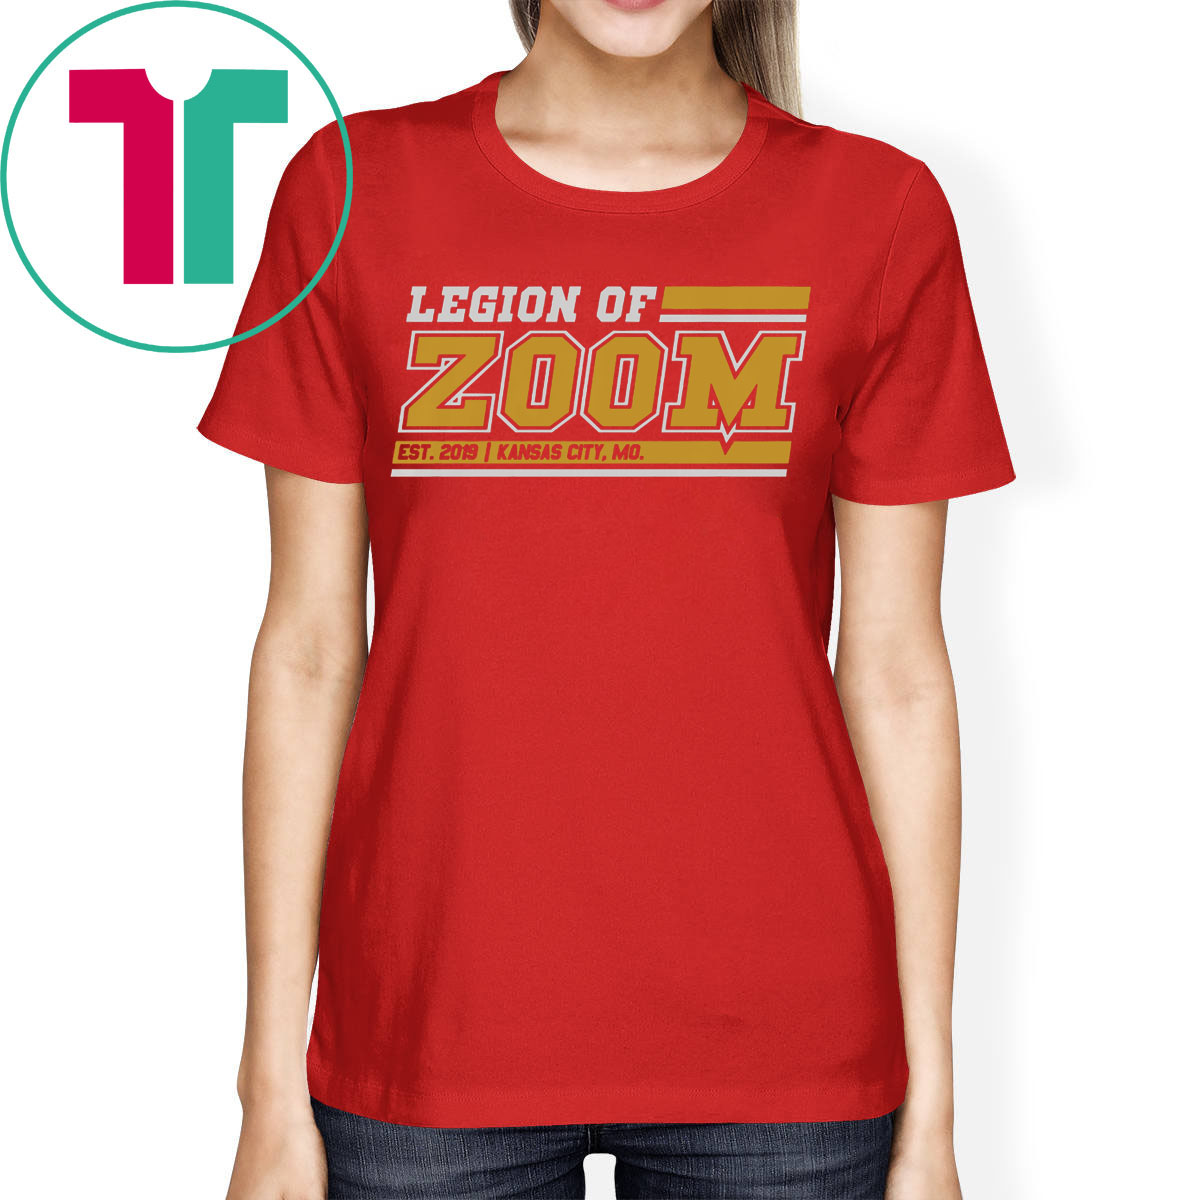 Legion of Zoom Shirt - Kansas City Football